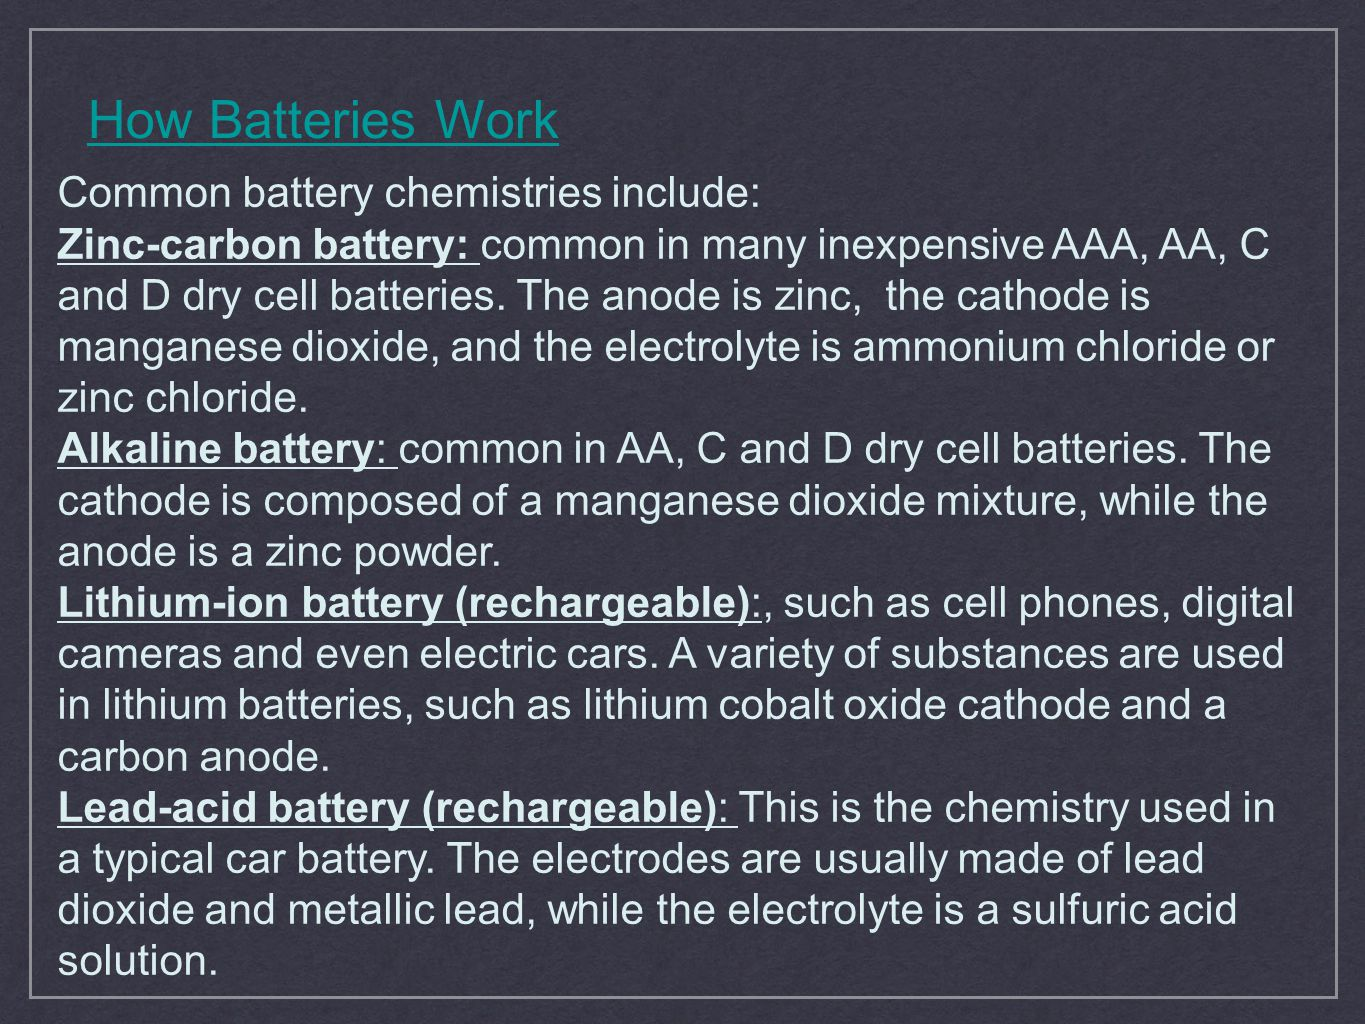 How Batteries Work Common battery chemistries include: Zinc-carbon battery: common in many inexpensive AAA, AA, C and D dry cell batteries. The anode